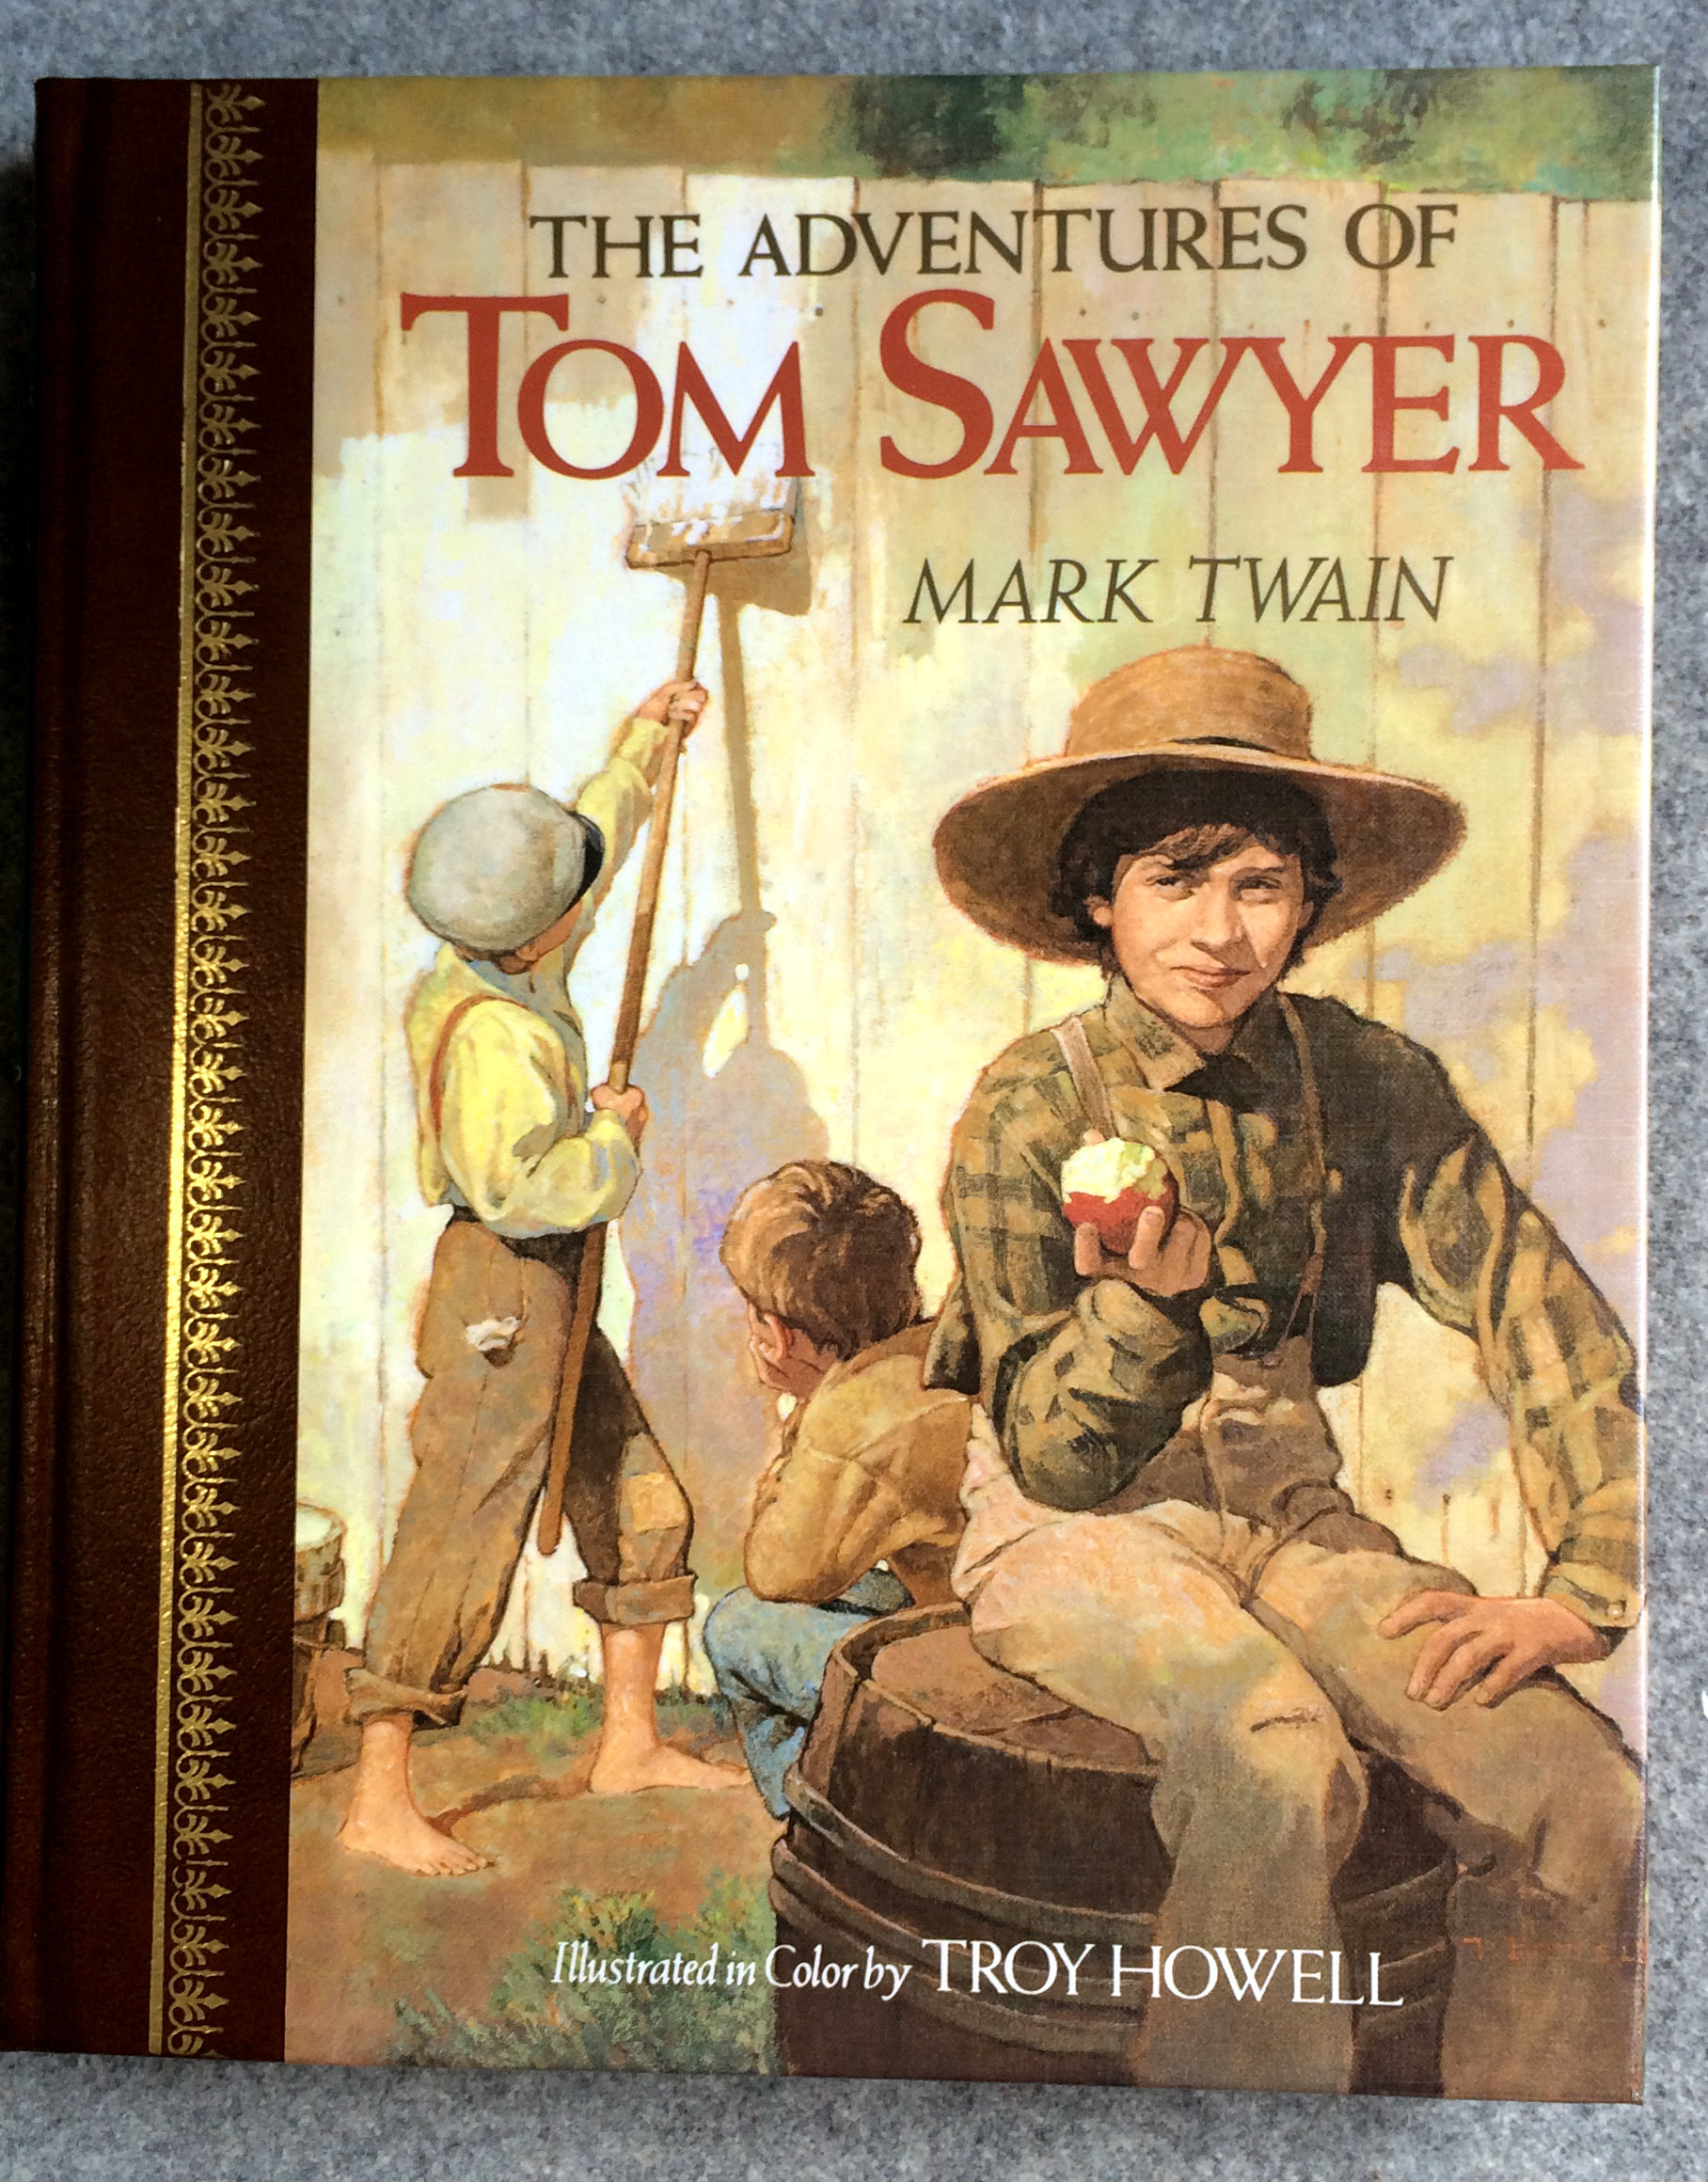 the adventures of tom sawyer 1989 children 39 s classics. Black Bedroom Furniture Sets. Home Design Ideas